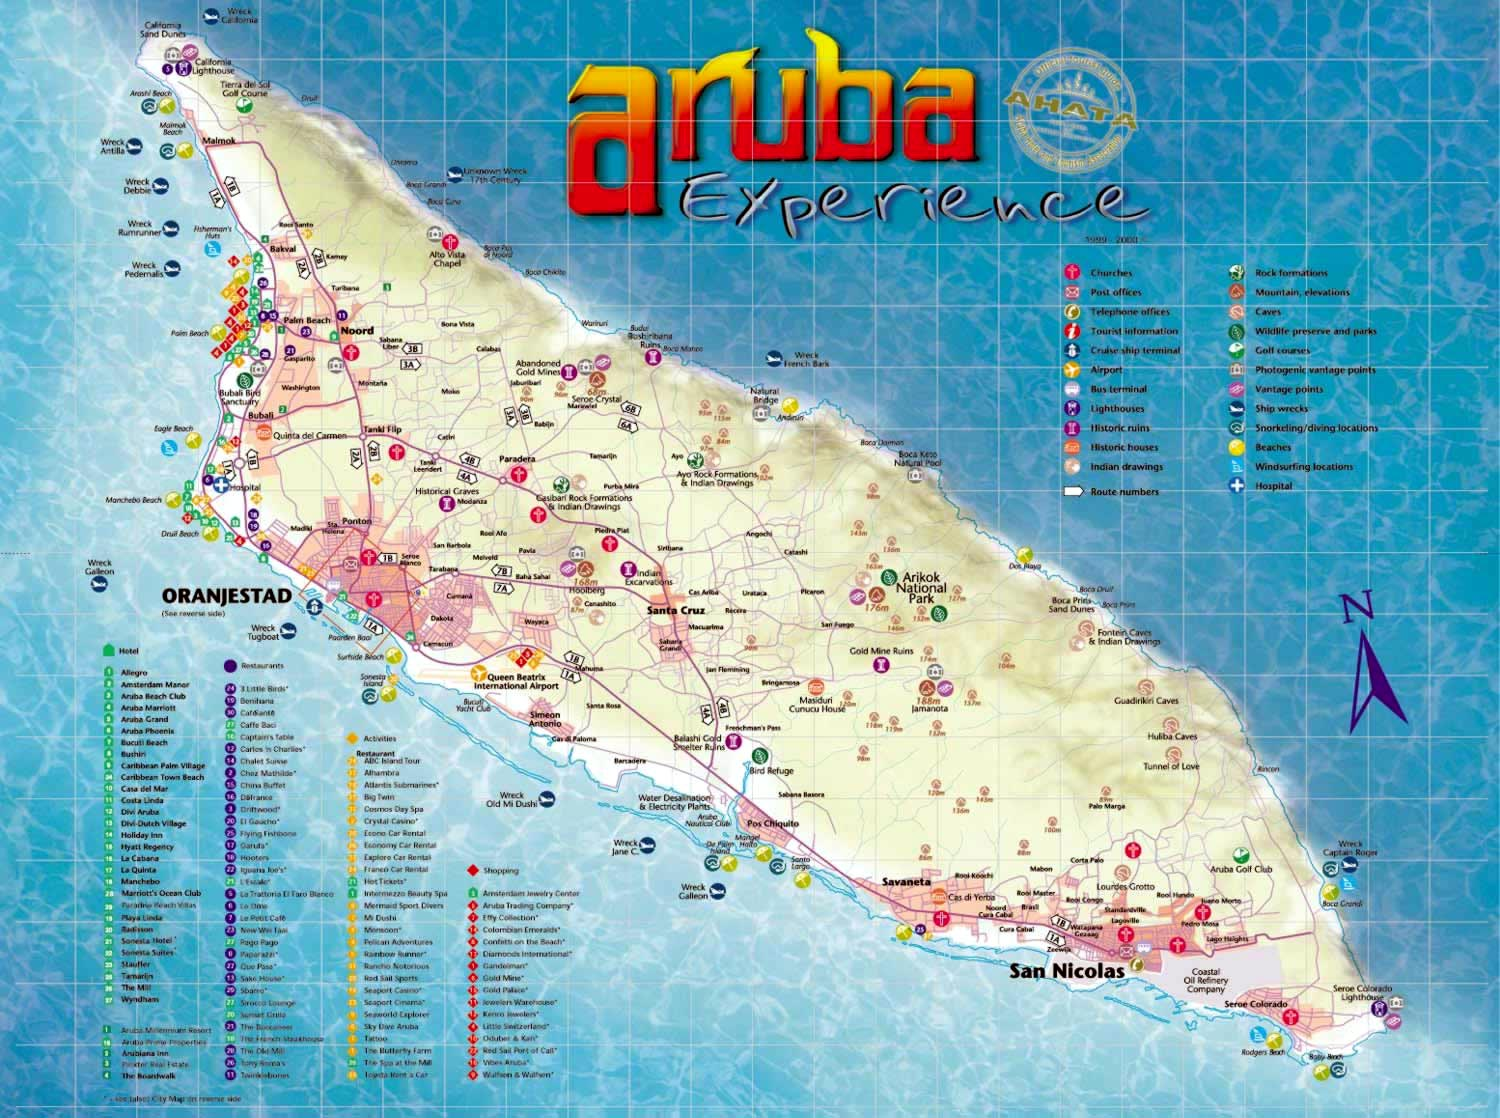 Aruba Maps | Printable Maps of Aruba for Download on map of riu aruba, map of hotels on eagle beach aruba, map of aruba timeshares, map of aruba high-rise, map of palm beach in aruba the caribbean,